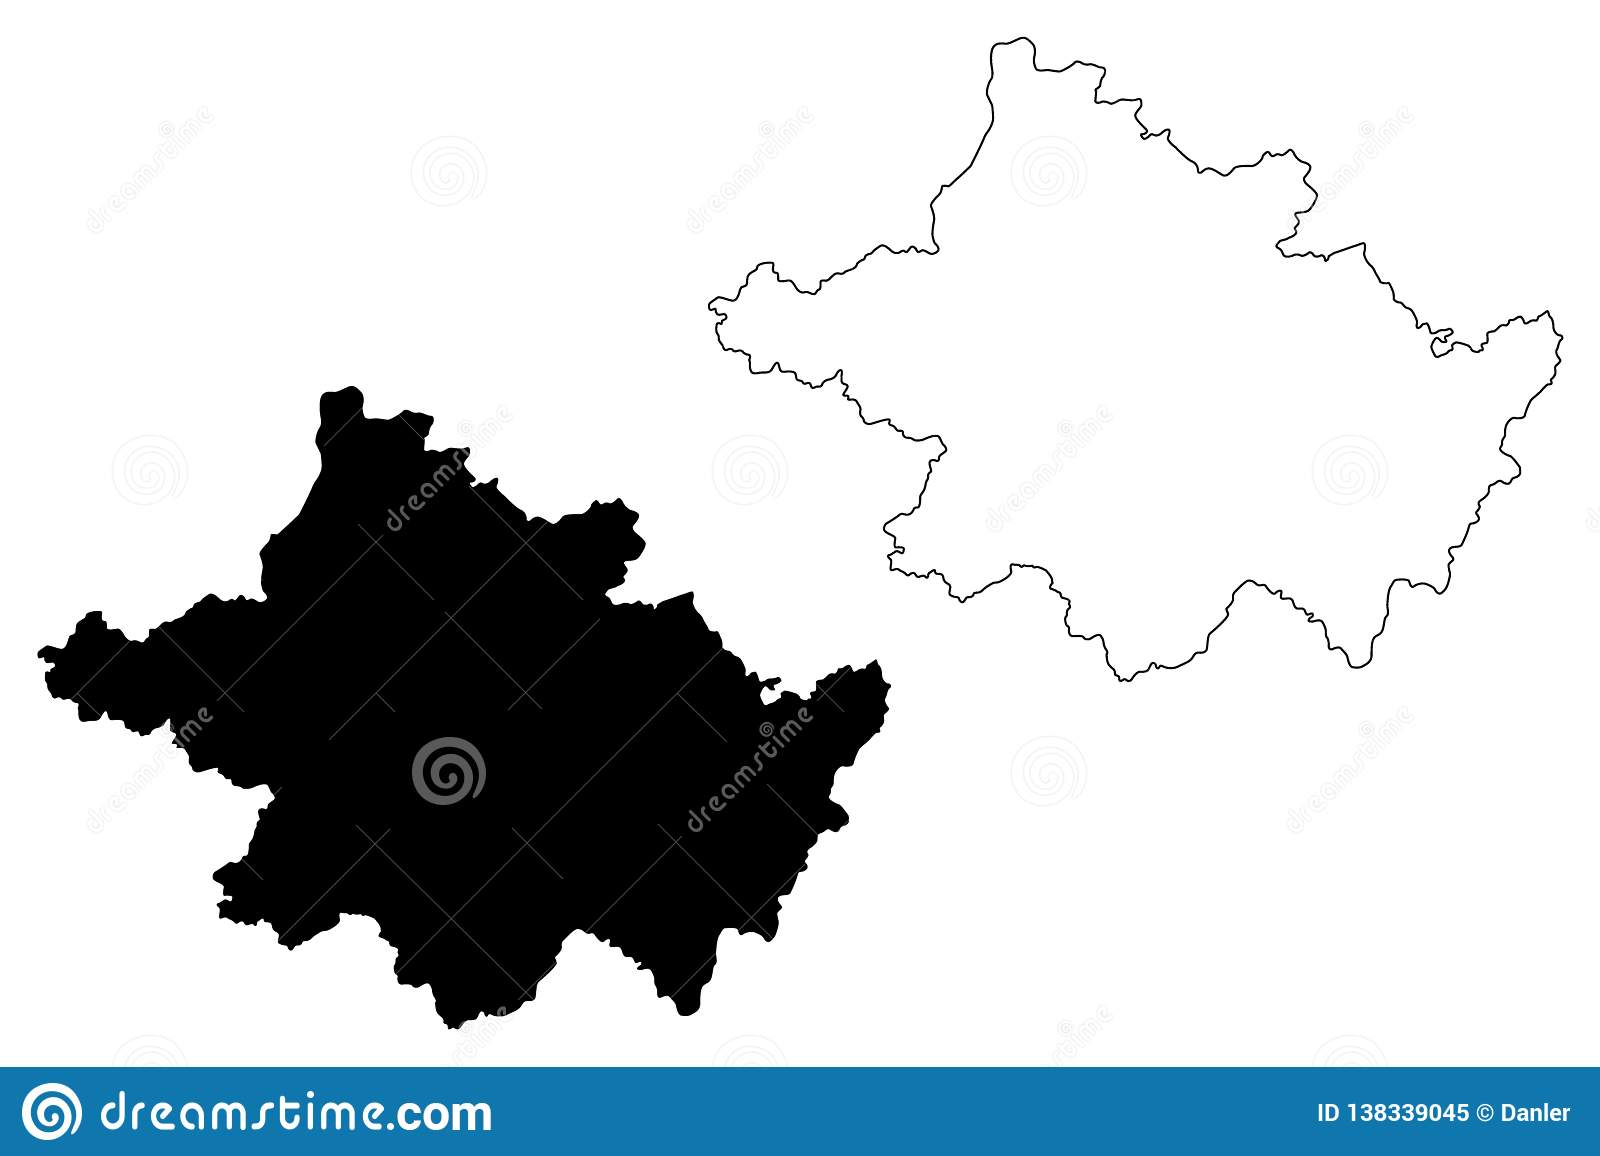 Map Of Counties Of Northern Ireland.County Tyrone Map Vector Stock Vector Illustration Of Northern